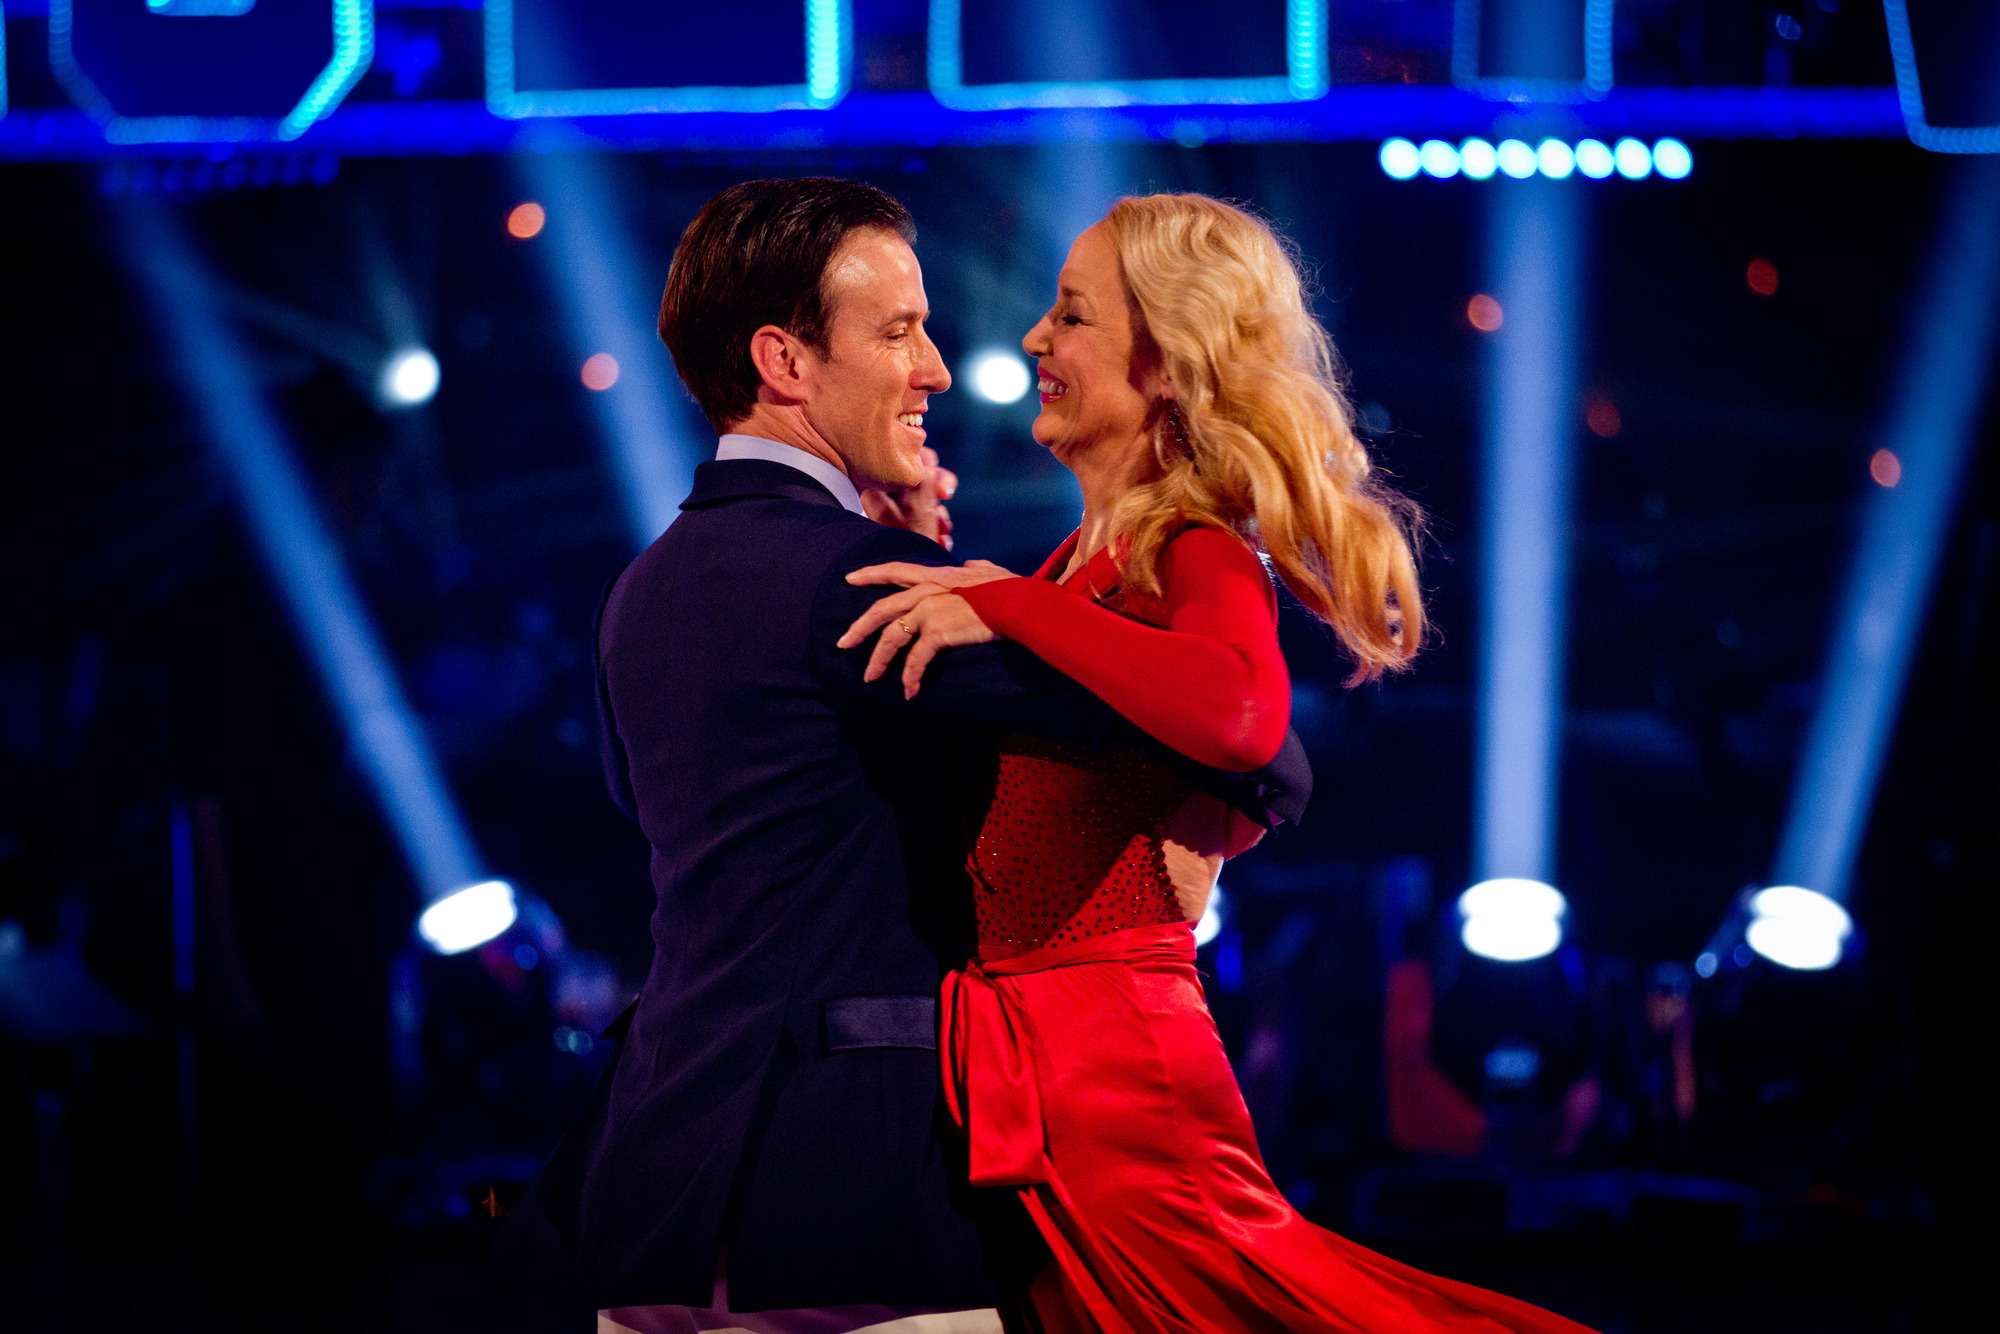 Jerry Hall and Anton Du Beke dance their farewell dance Anton Du Beke, Jerry Hall - (C) BBC - Photographer: Guy Levy